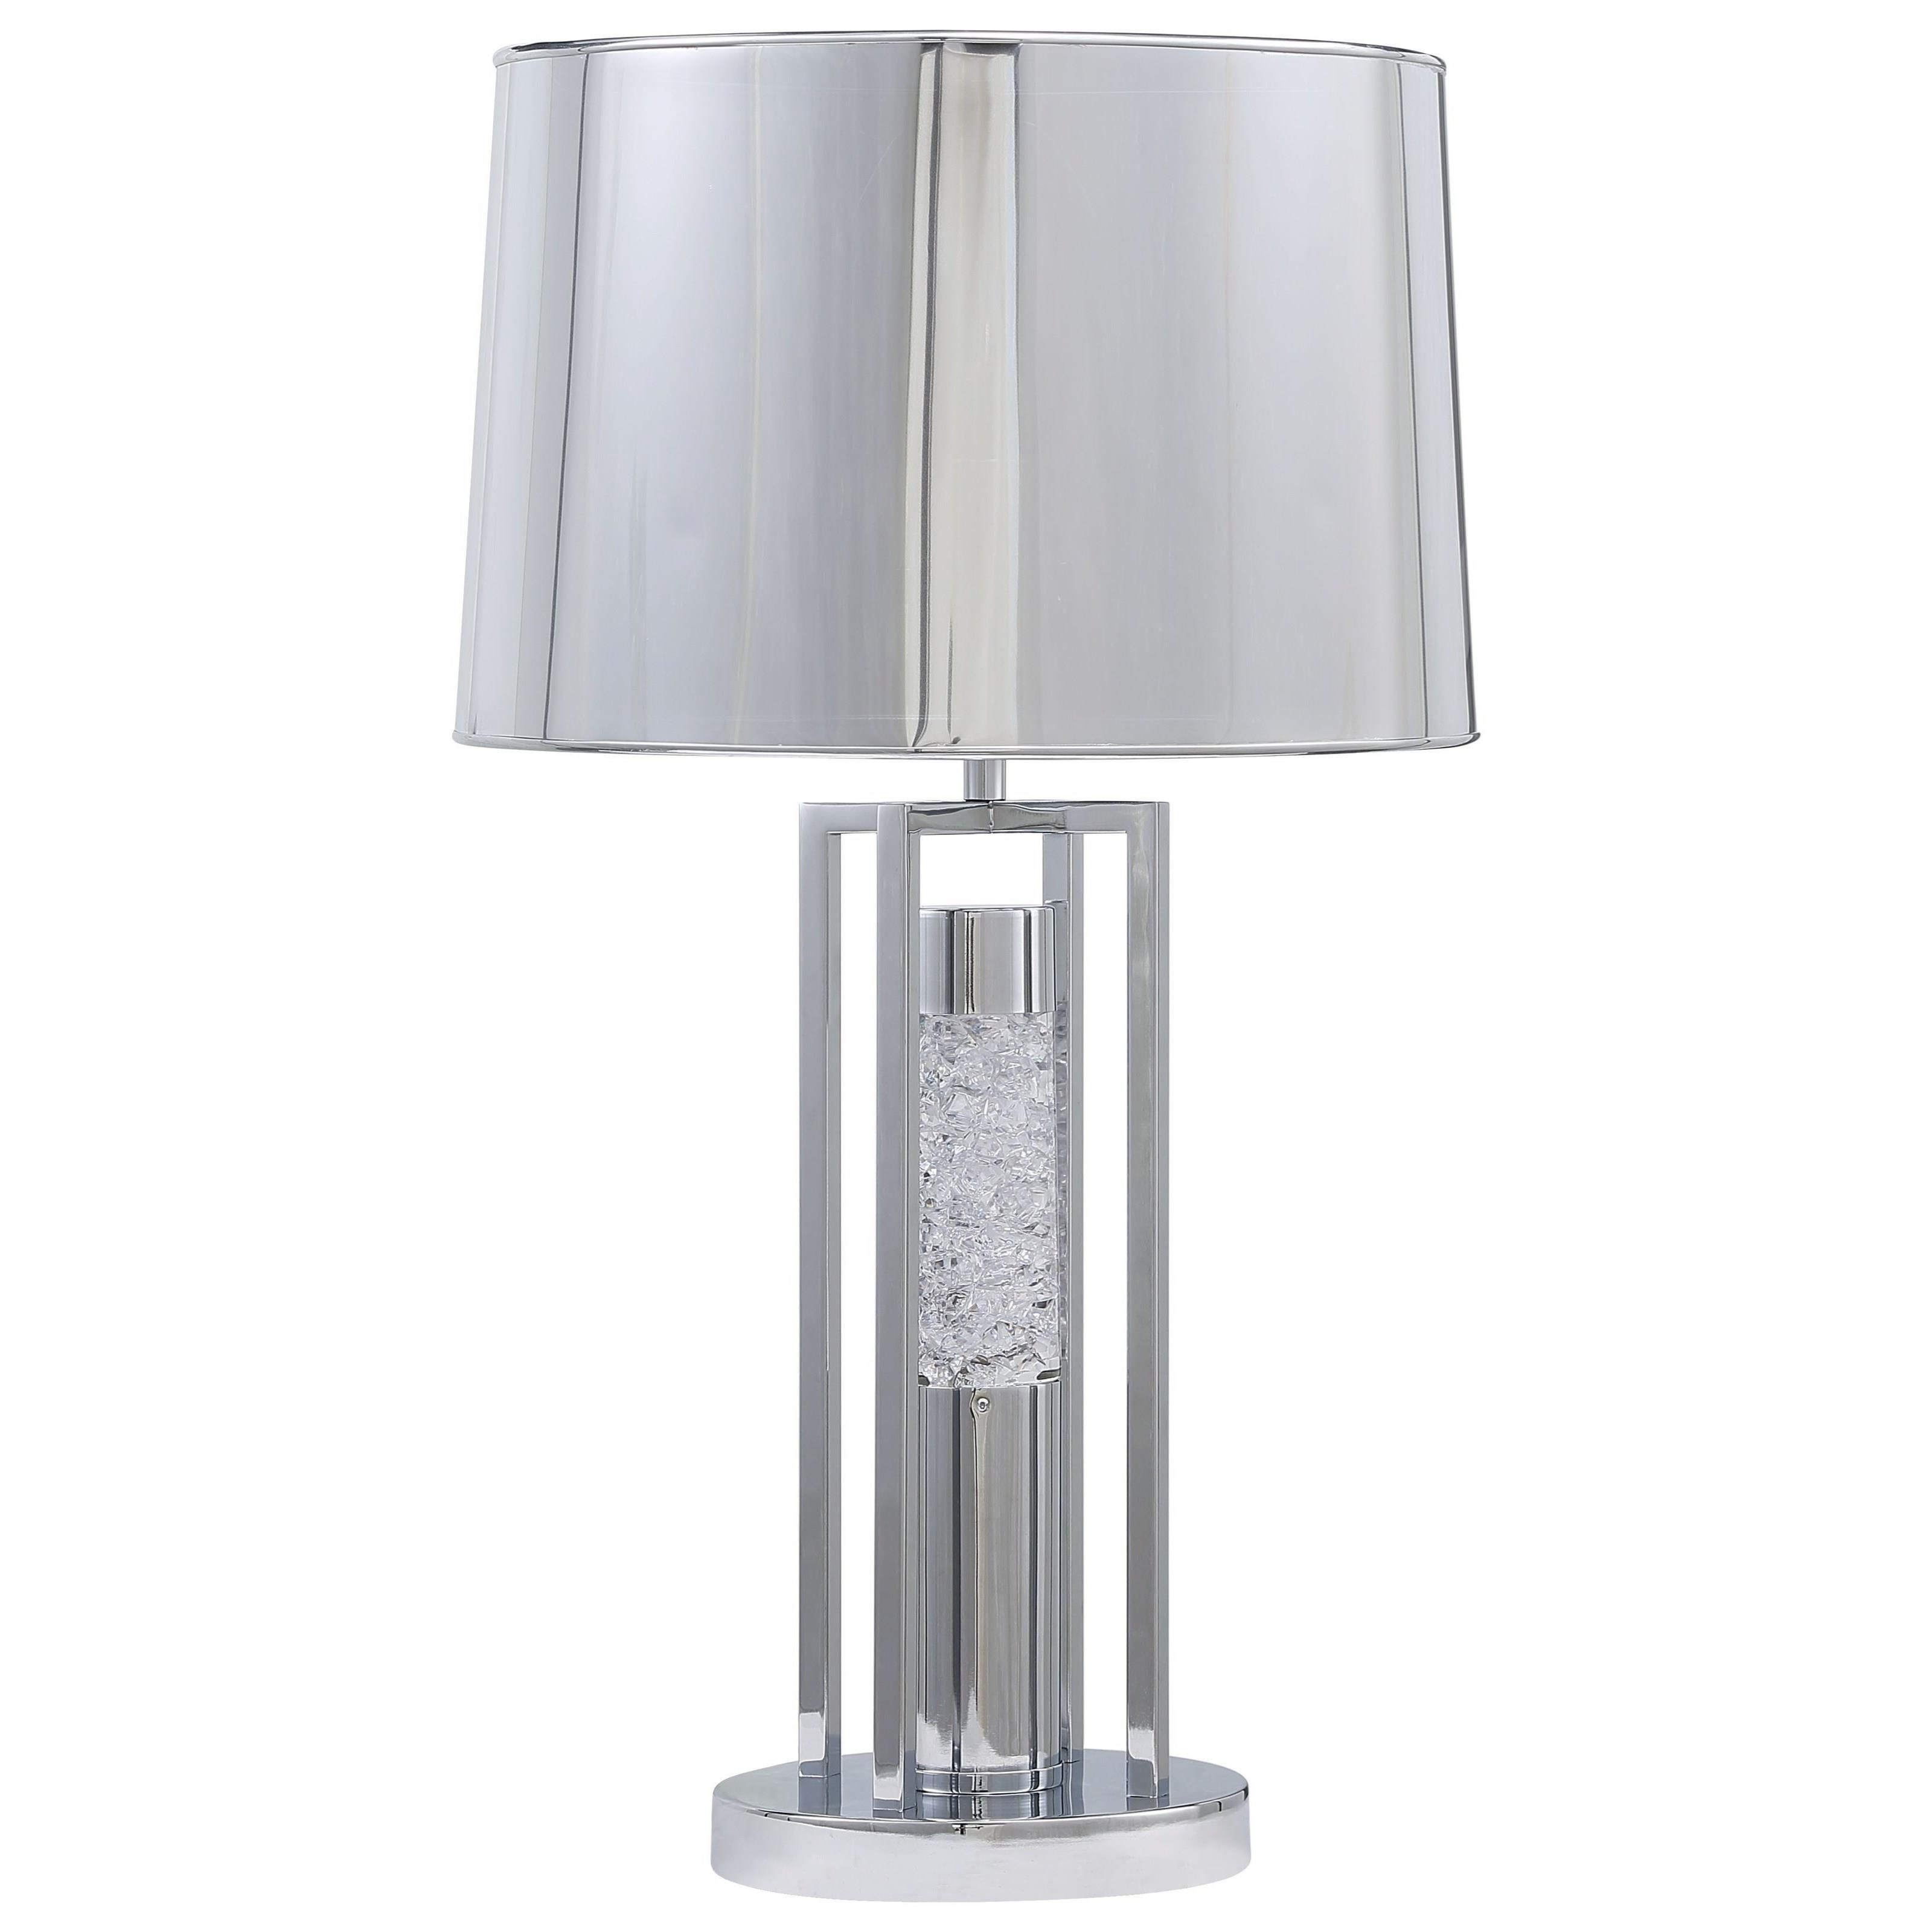 Olsen Table Lamp by Acme Furniture at Dream Home Interiors